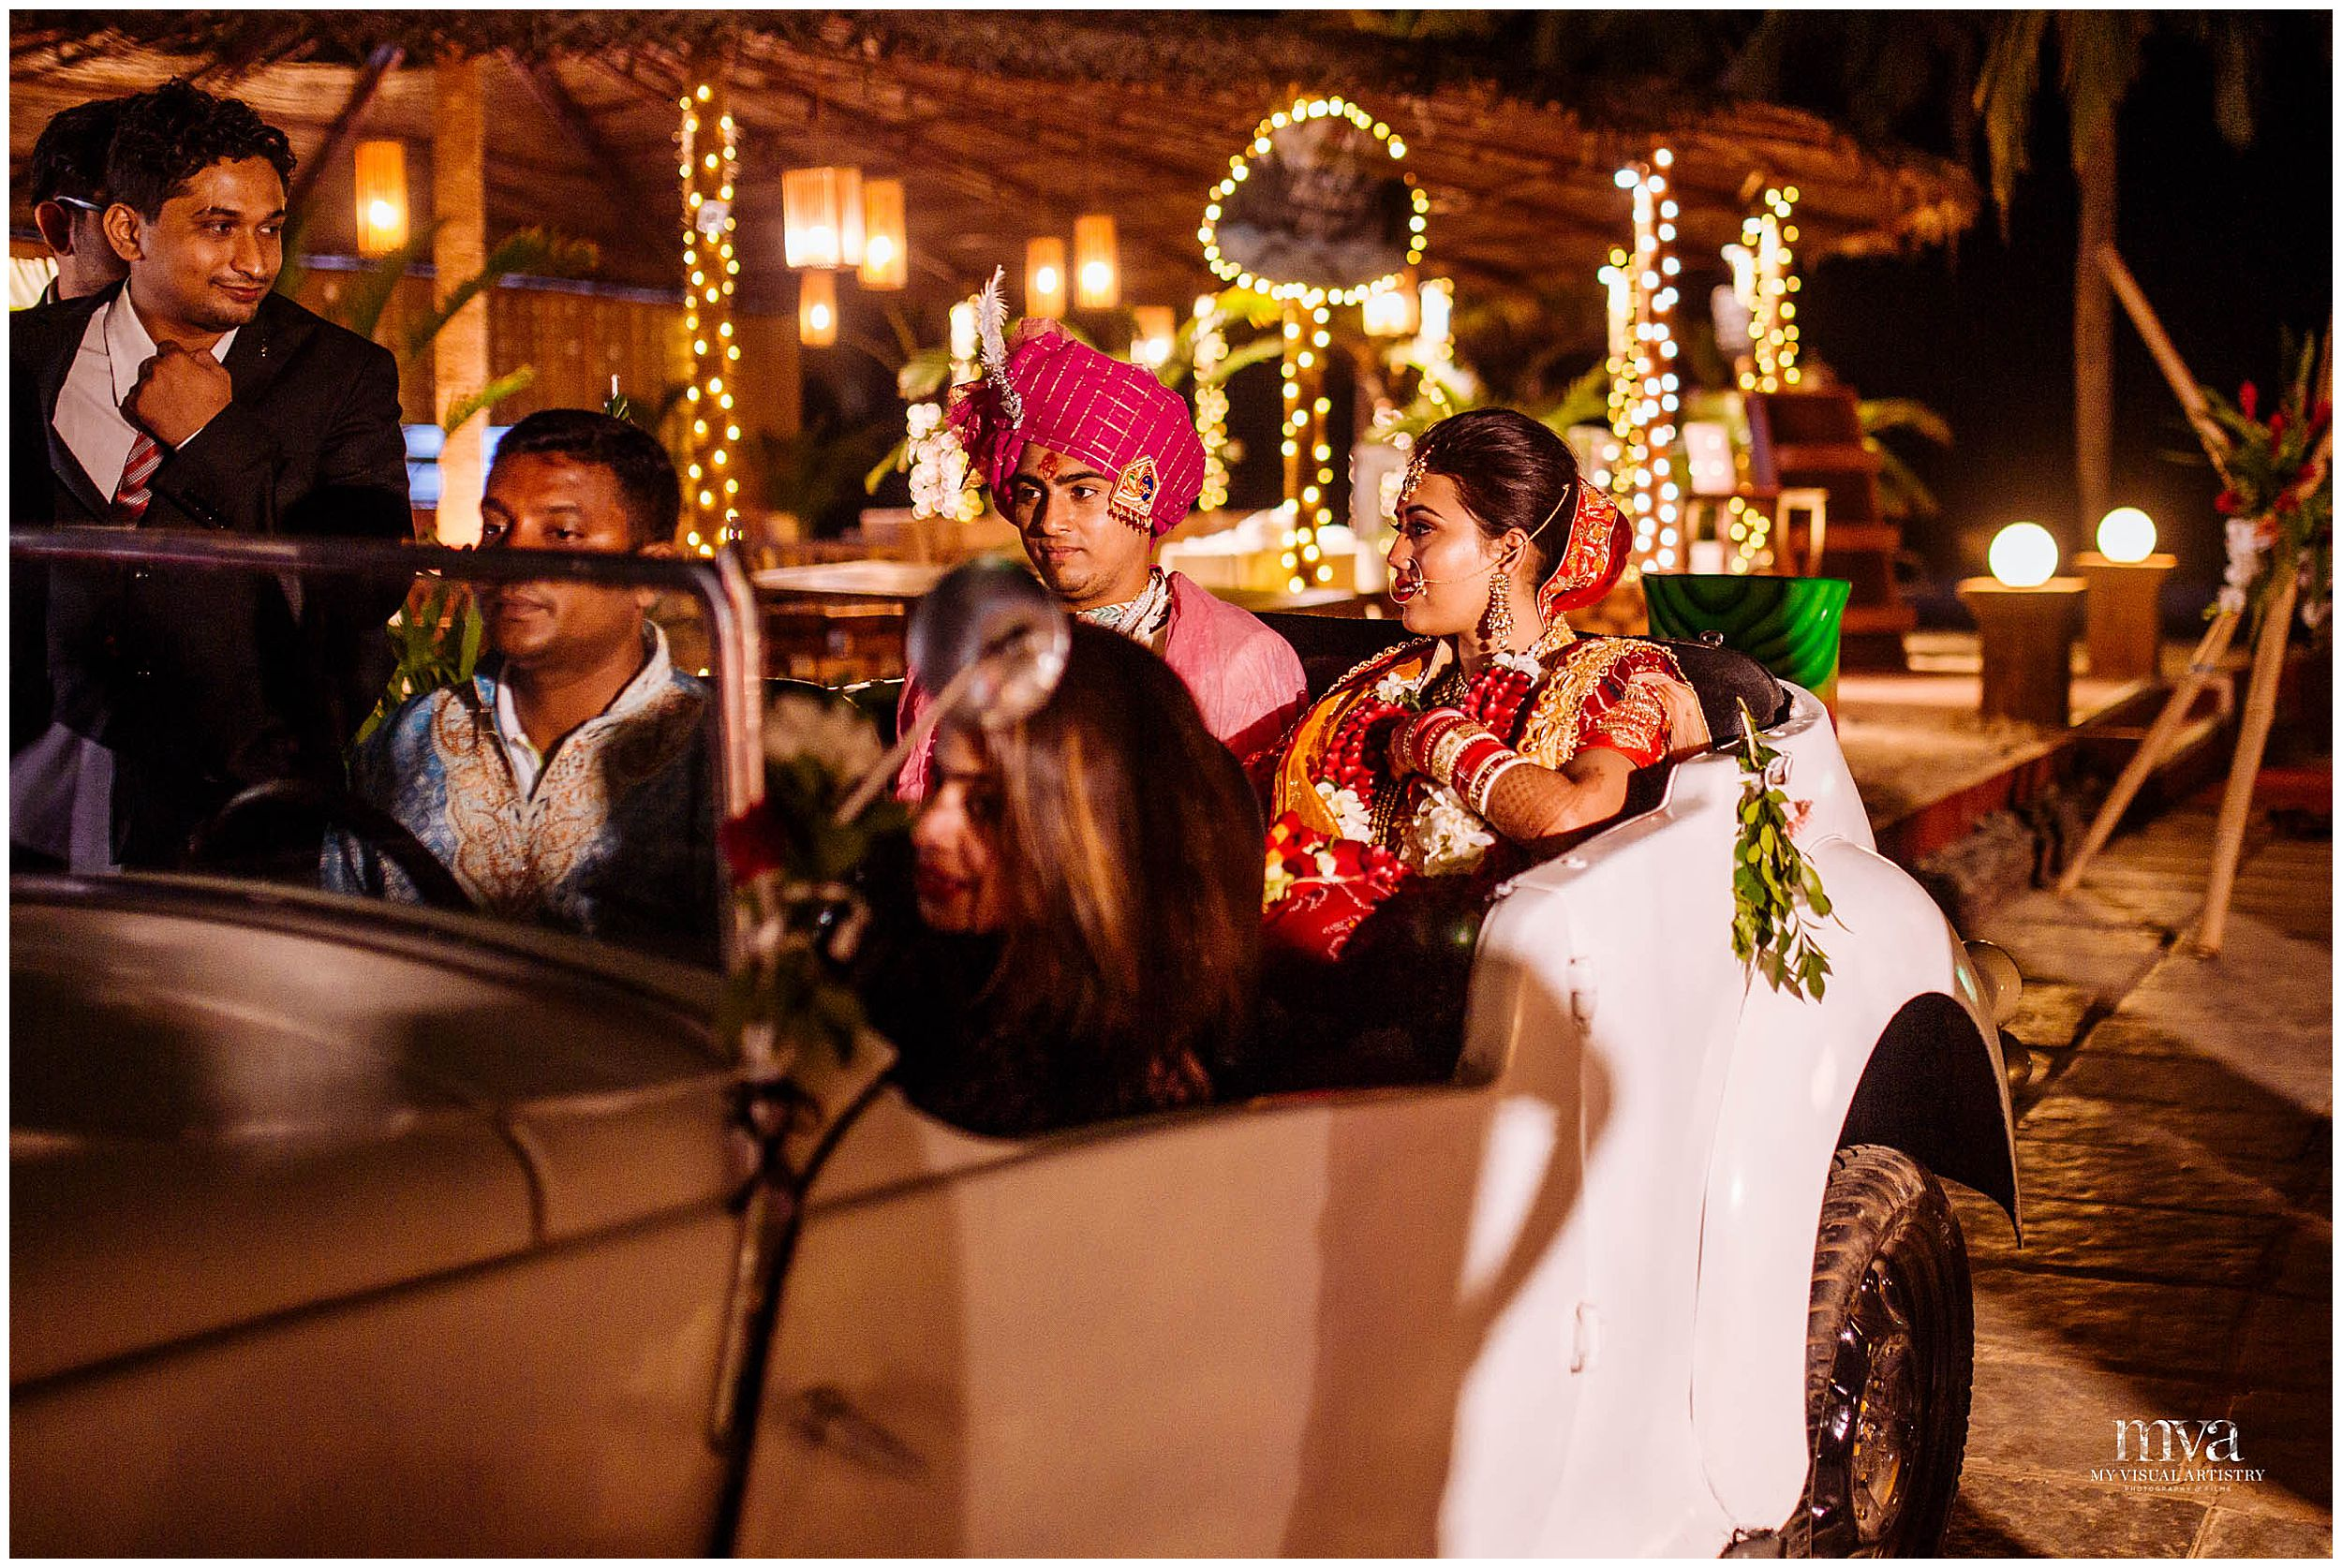 ROHIT_SANIYA_MYVISUALARTISTRY__WEDDING_PHOTOGRAPHER_GOA_DESTINATION_CAREVELA_RESORT_0027.jpg